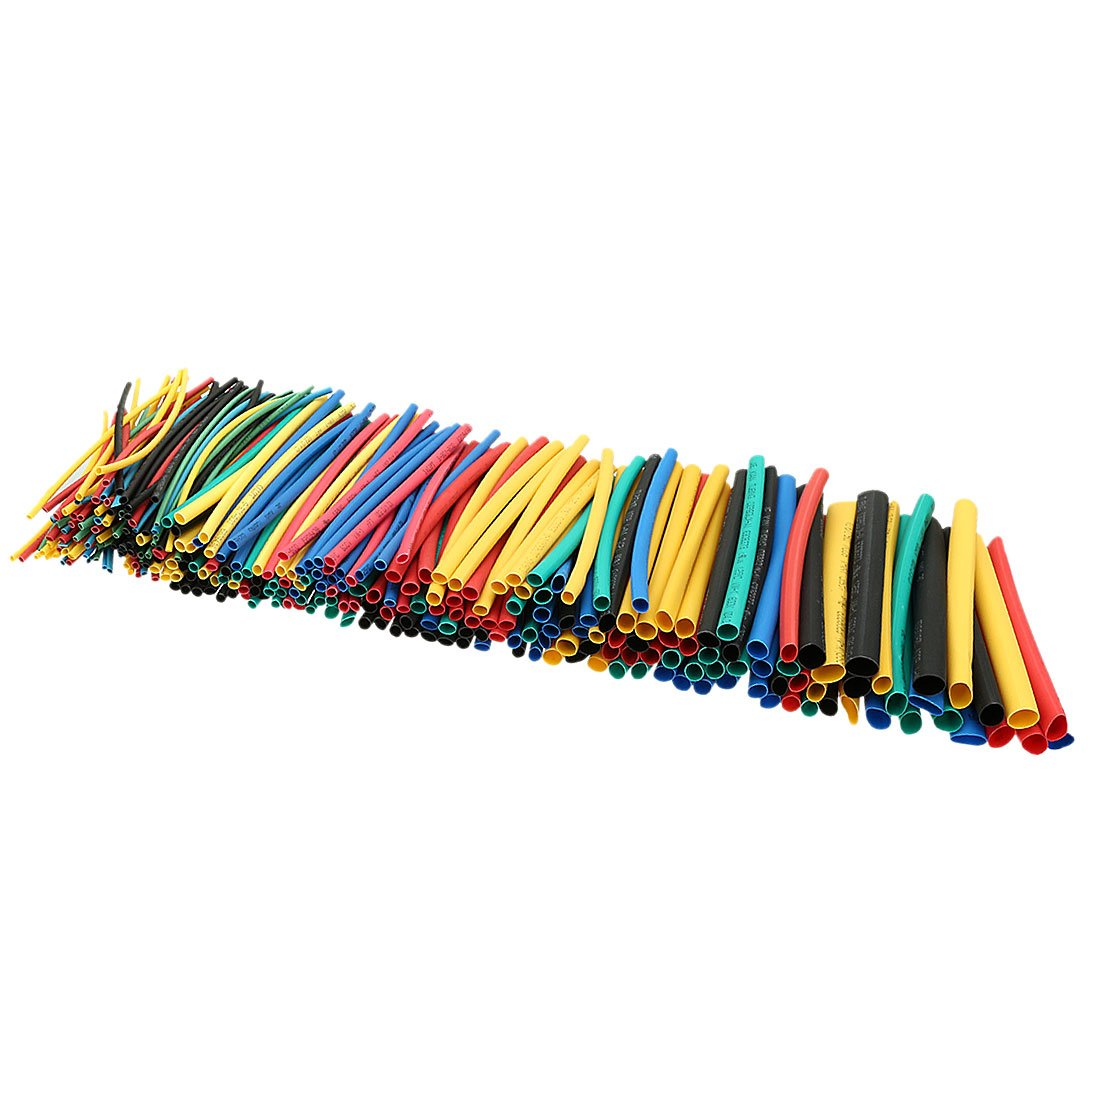 uxcell 410Pcs 2:1 Heat Shrink Tubing Tube Sleeving Wire Cable 5 Color 10 Sizes by uxcell (Image #3)